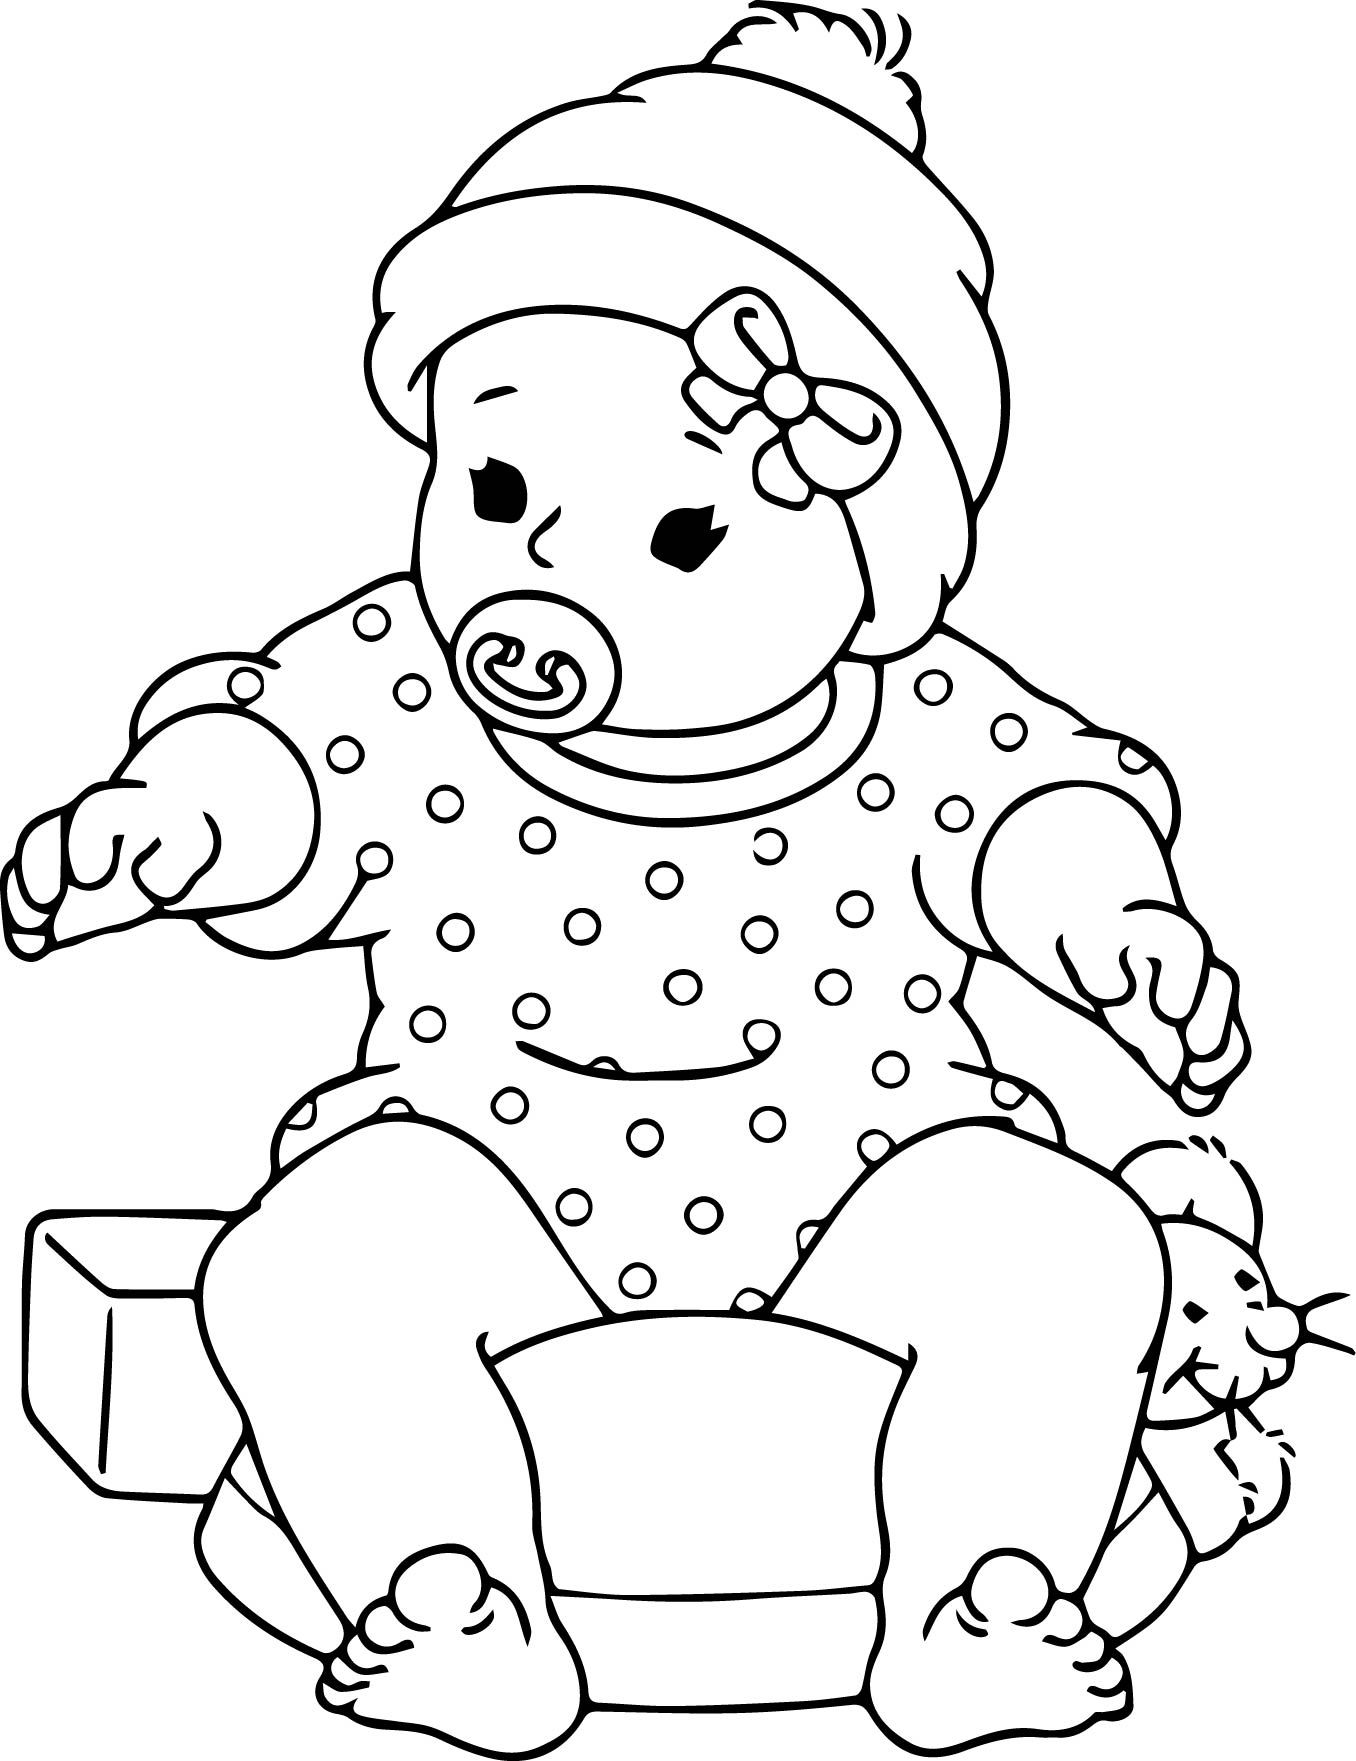 Free Printable Baby Doll Coloring Pages Throughout Inside Helen